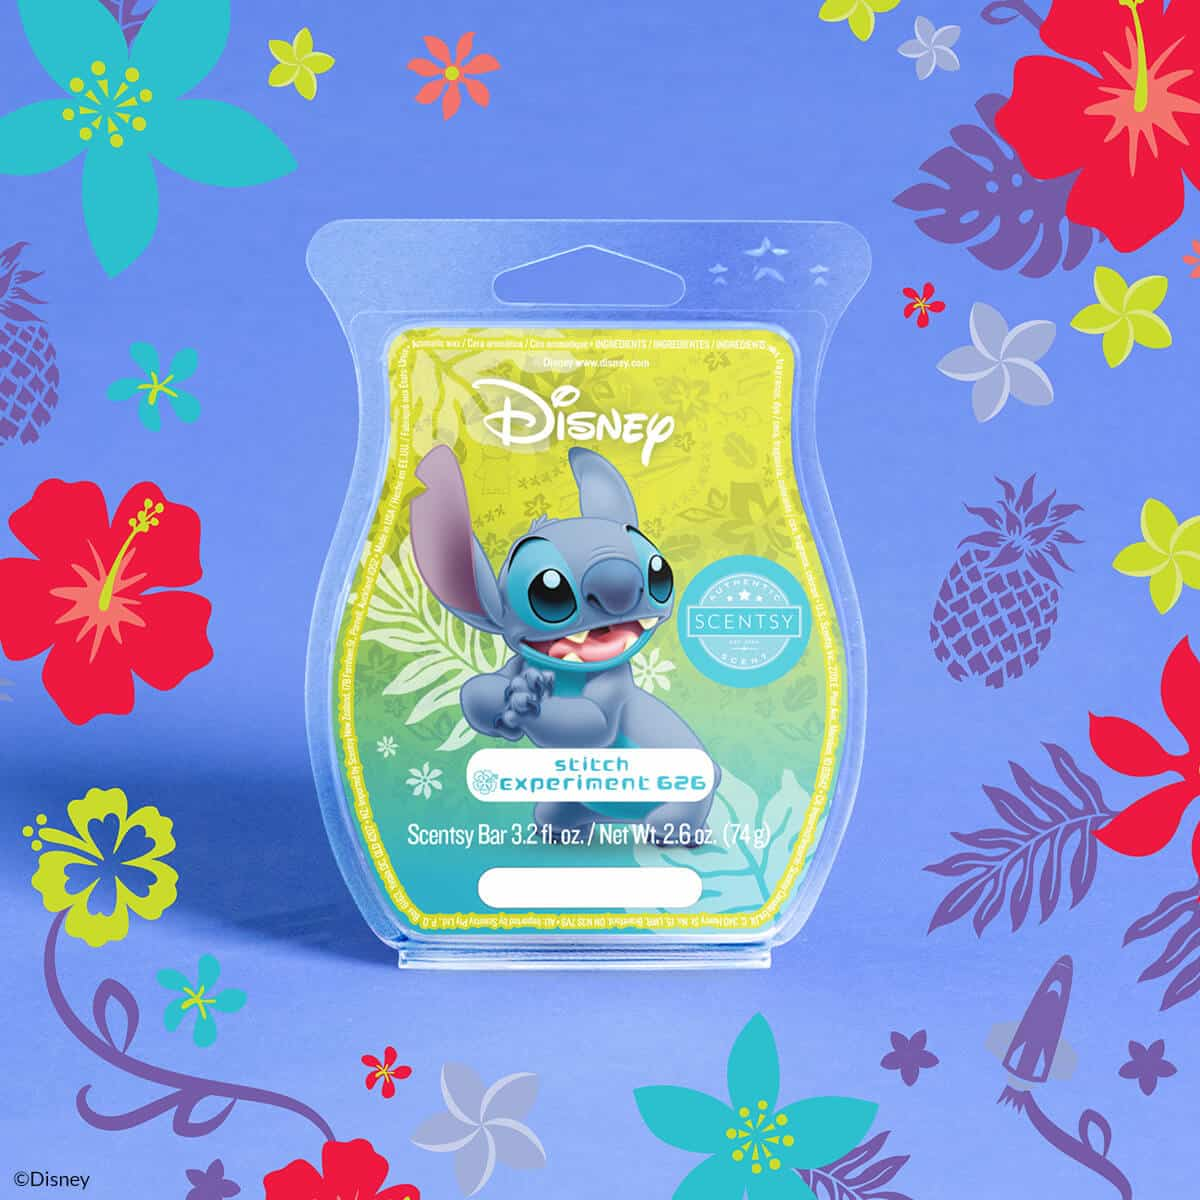 STITCH EXPERIMENT 626 SCENTSY BAR